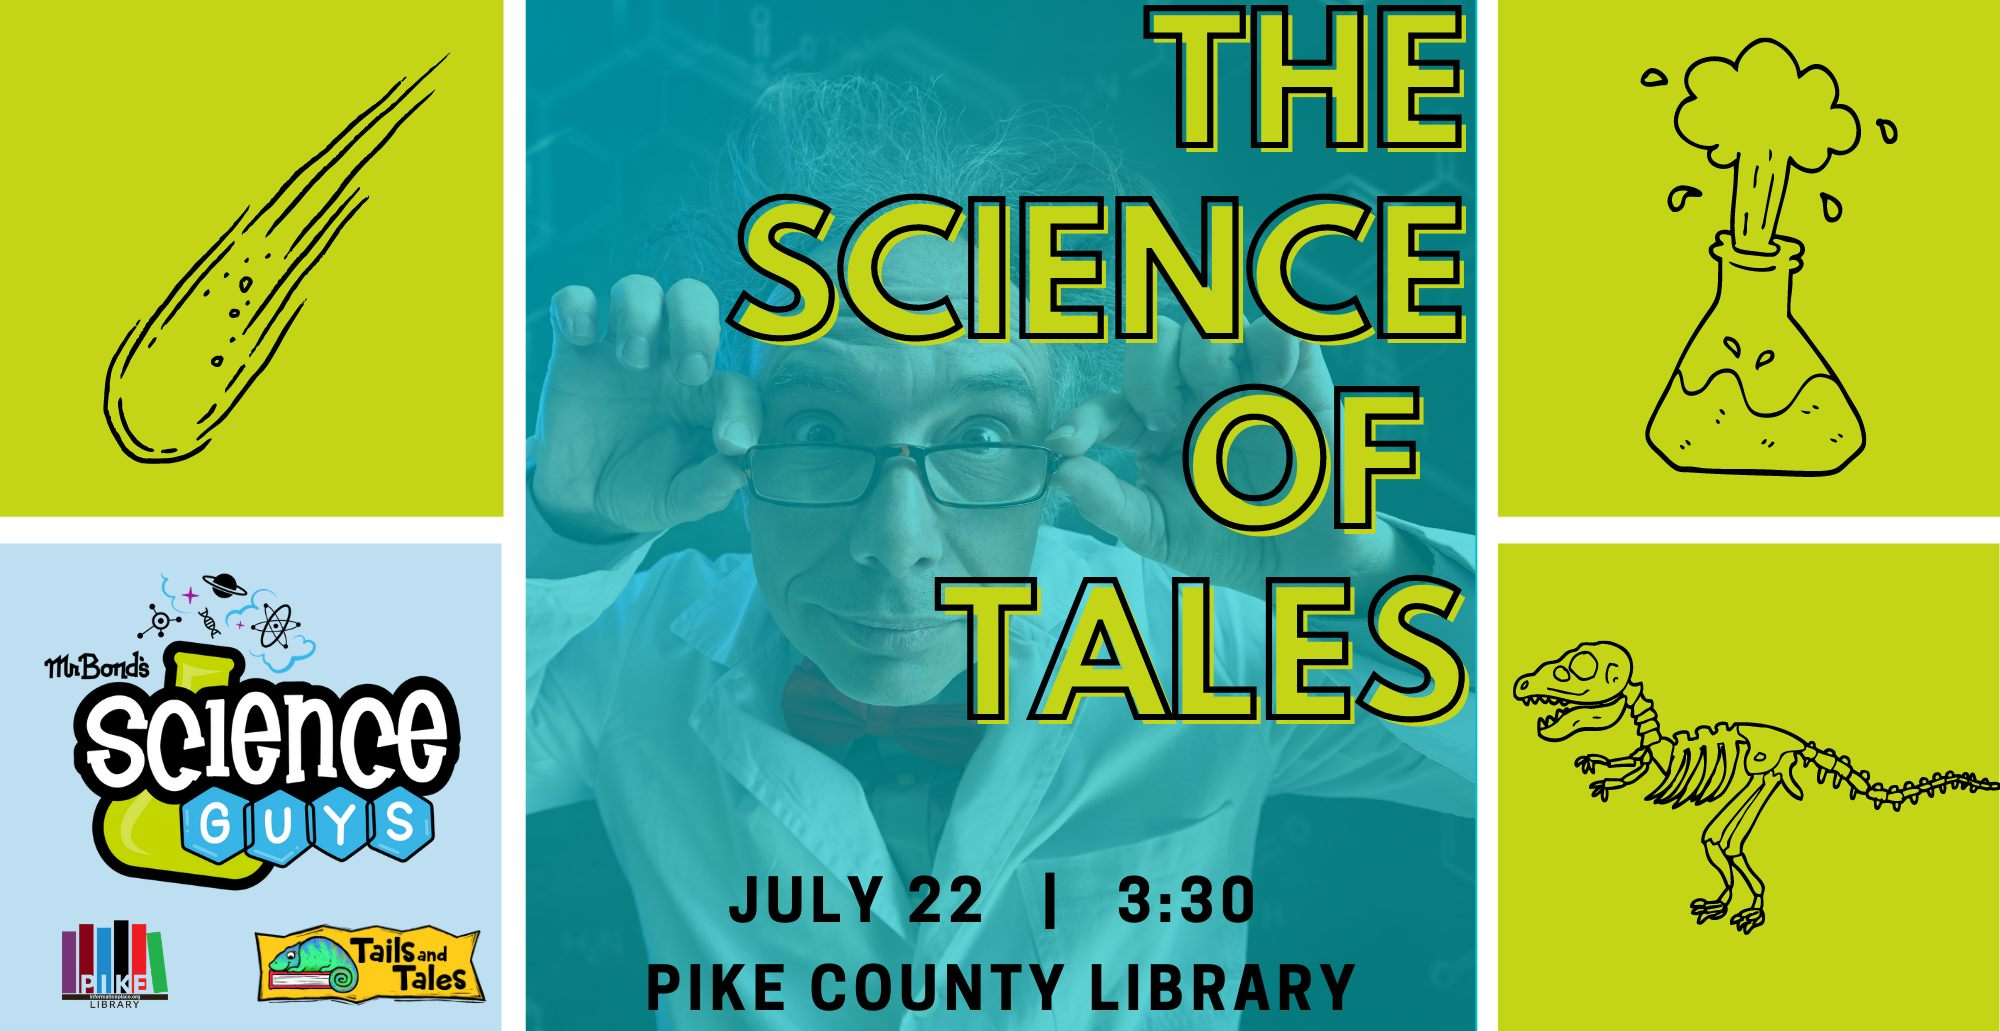 science of tales